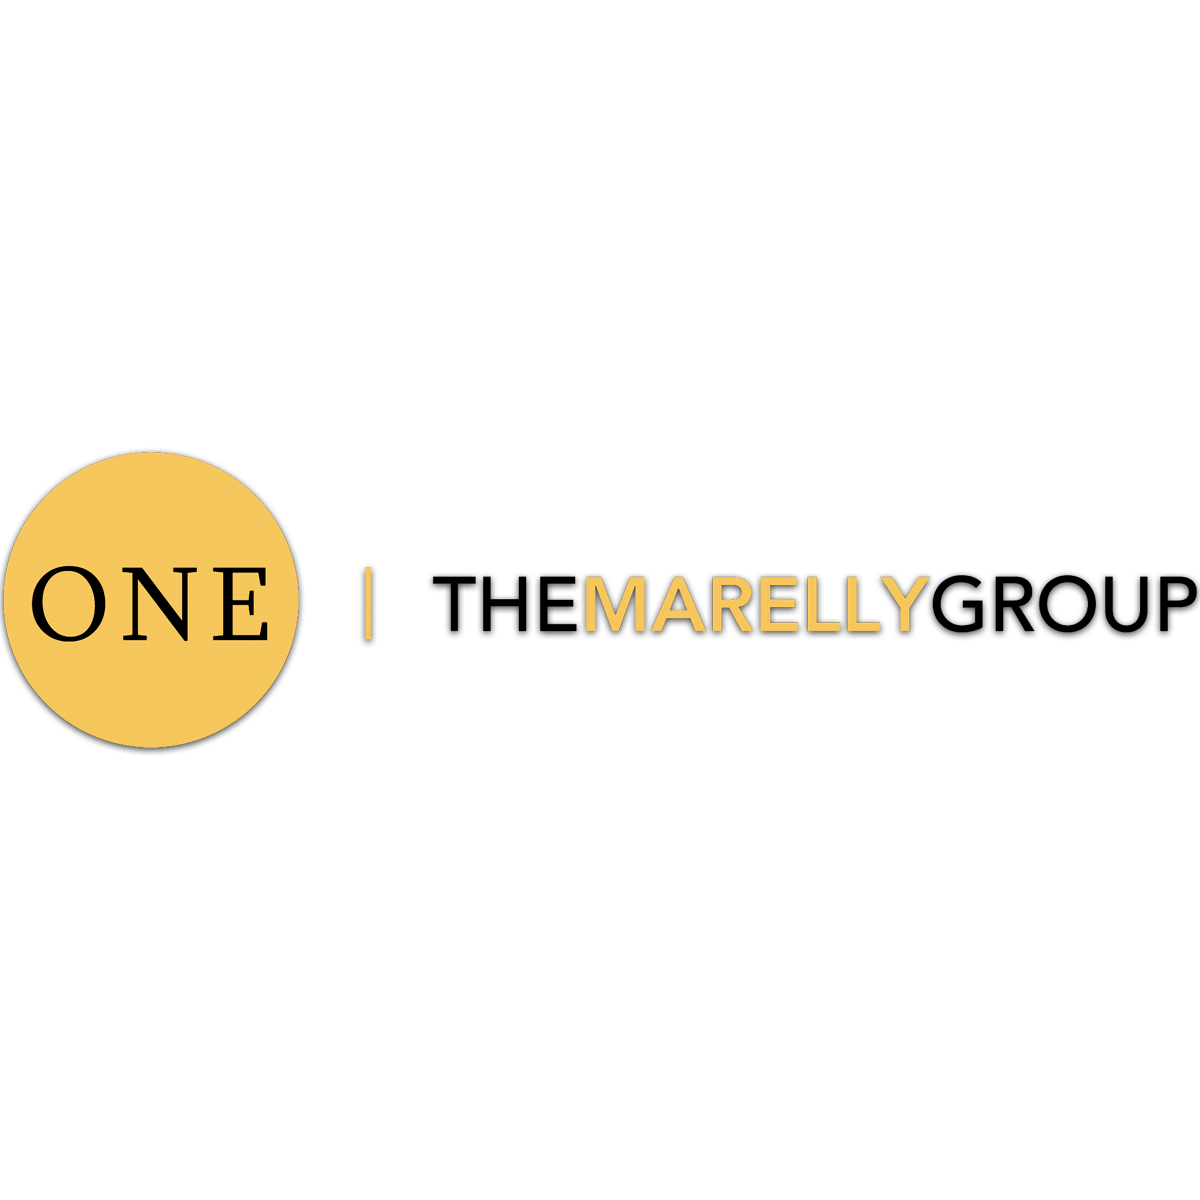 The Marelly Group